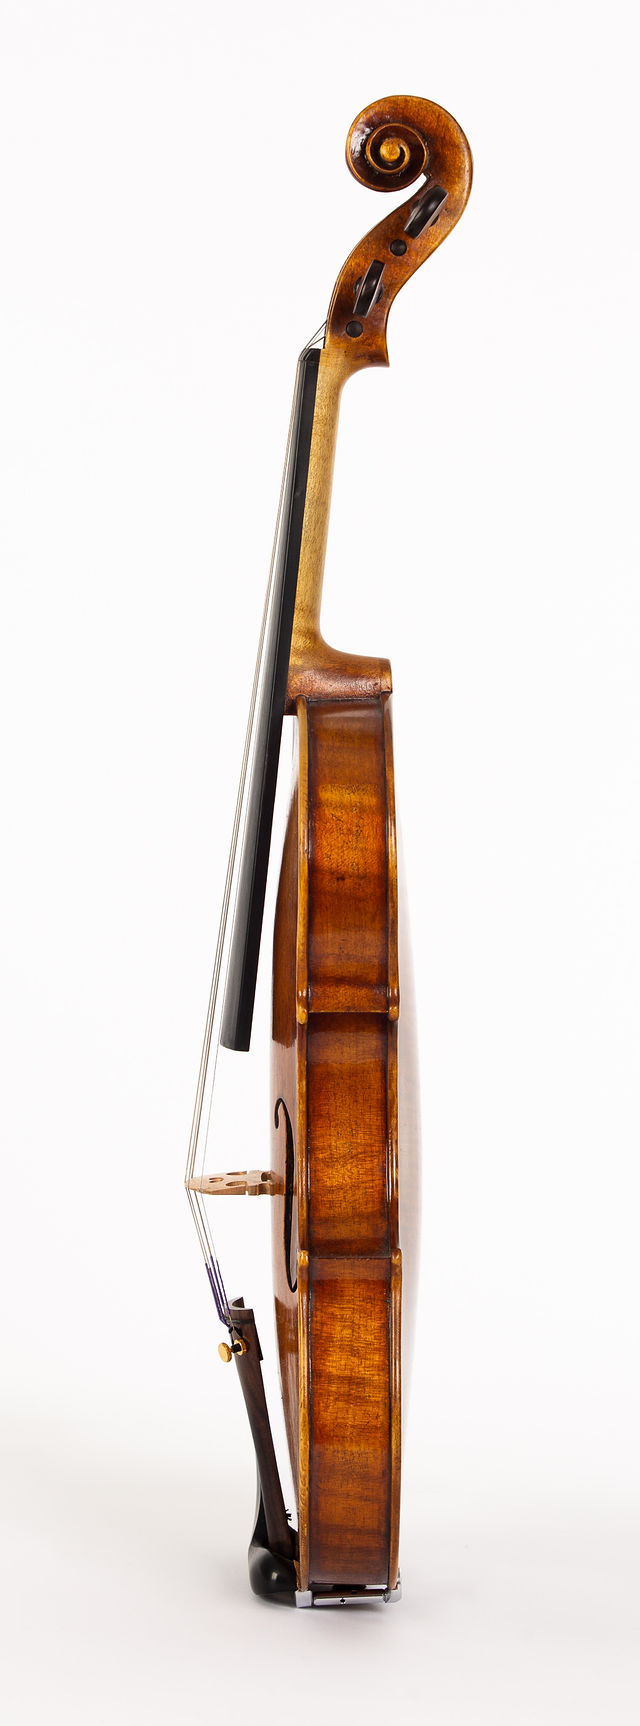 Starkie Guarneri model violin 2016 side.jpg